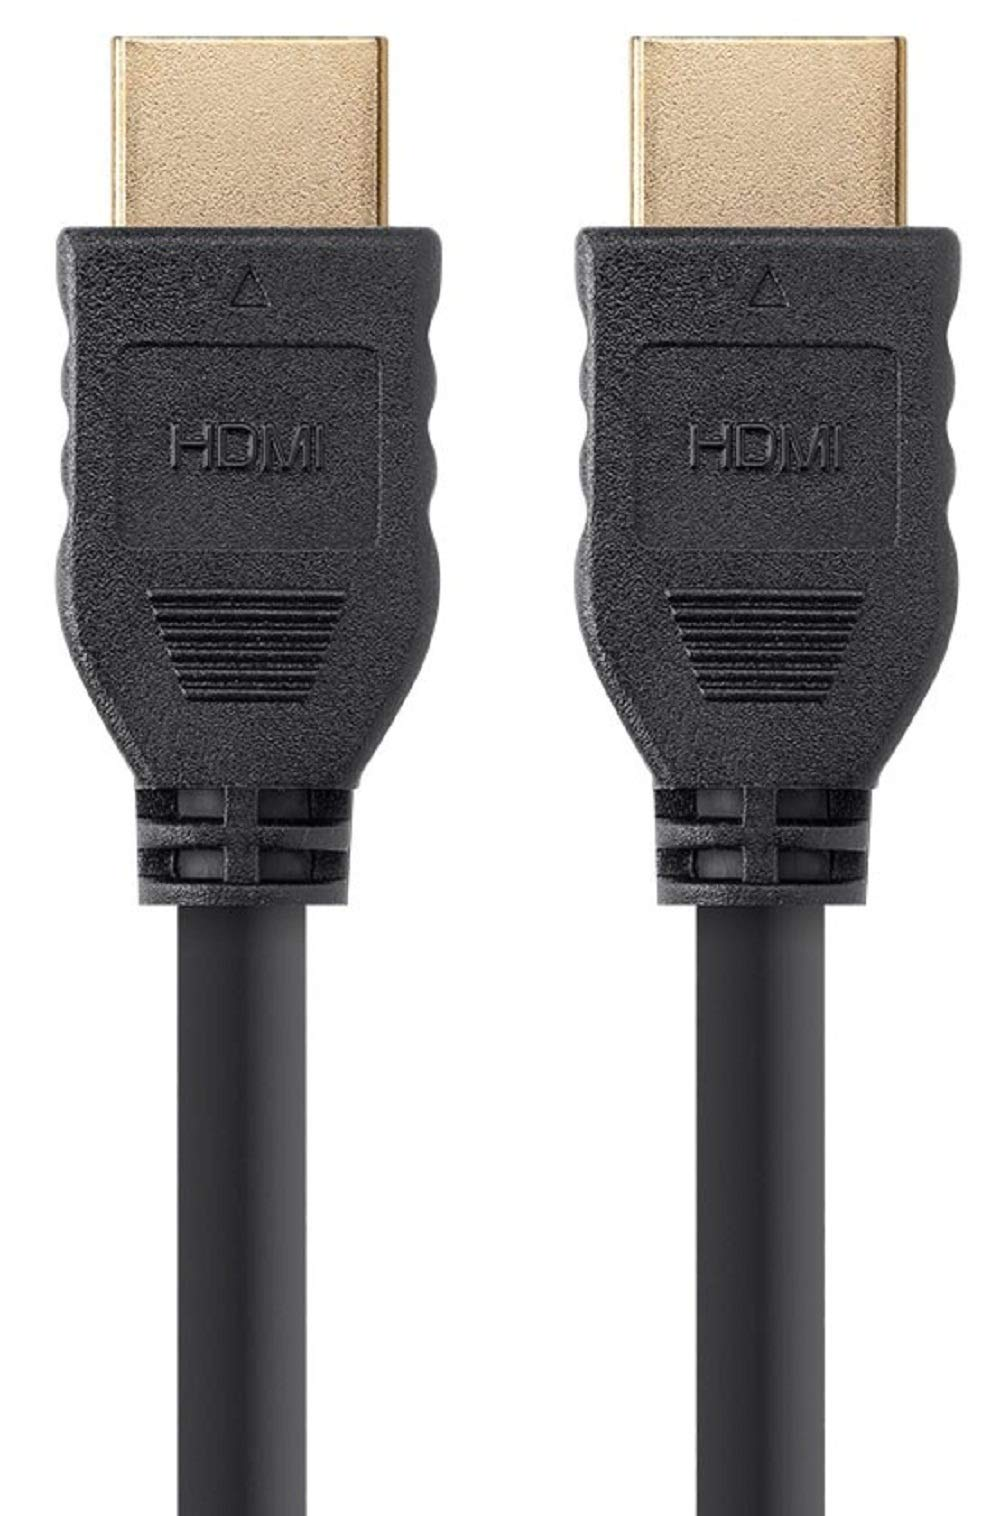 Cable HDMI de alta velocidad Monoprice - 10 pies - Negro | Sin logotipo, 4K @ 60Hz, HDR, 18Gbps, YUV 4: 4: 4, 30AWG, CL2